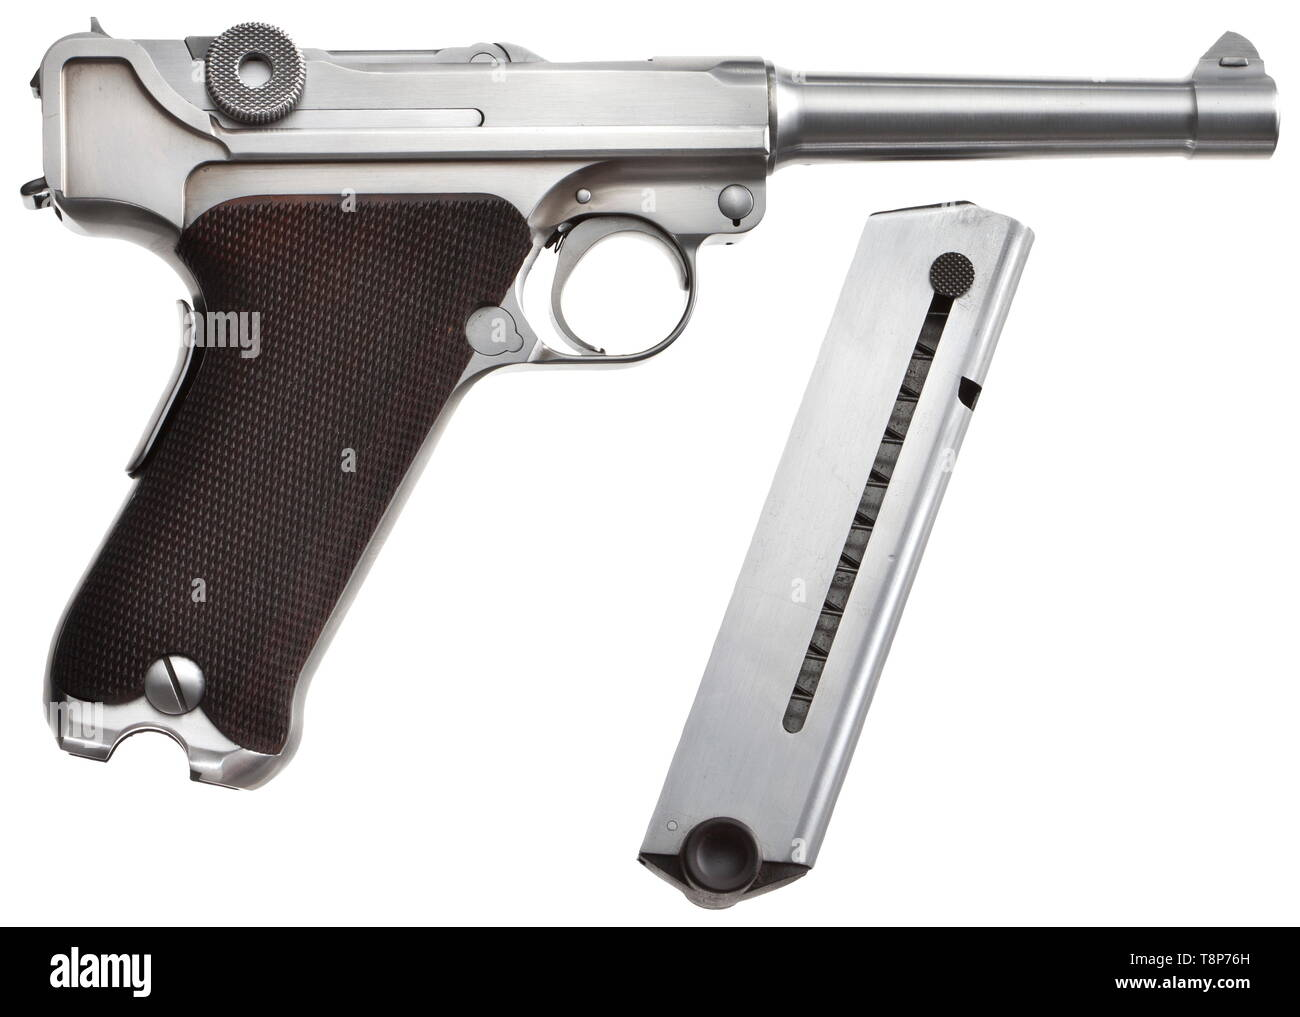 A Werle-Nedbal Parabellum, prototype Cal..45, ACP, no. 001. Mirror-like bore, length 125 mm. 7-shot magazine. German proof mark. Grip safety. Weapon completely in the white. Most minimal traces of contact due to assembly and proof marking. As new condition. Parts of the weapon manufactured at Karl Nedbal's in Vienna. Completed and assembled by German Parabellum specialist Herbert Werle. The first exemplar of the co-operation between both the renowned specialists Nedbal and Werle. Manufacturing marks 'NK' and 'Werle' on weapon. With this weapon He, Additional-Rights-Clearance-Info-Not-Available - Stock Image